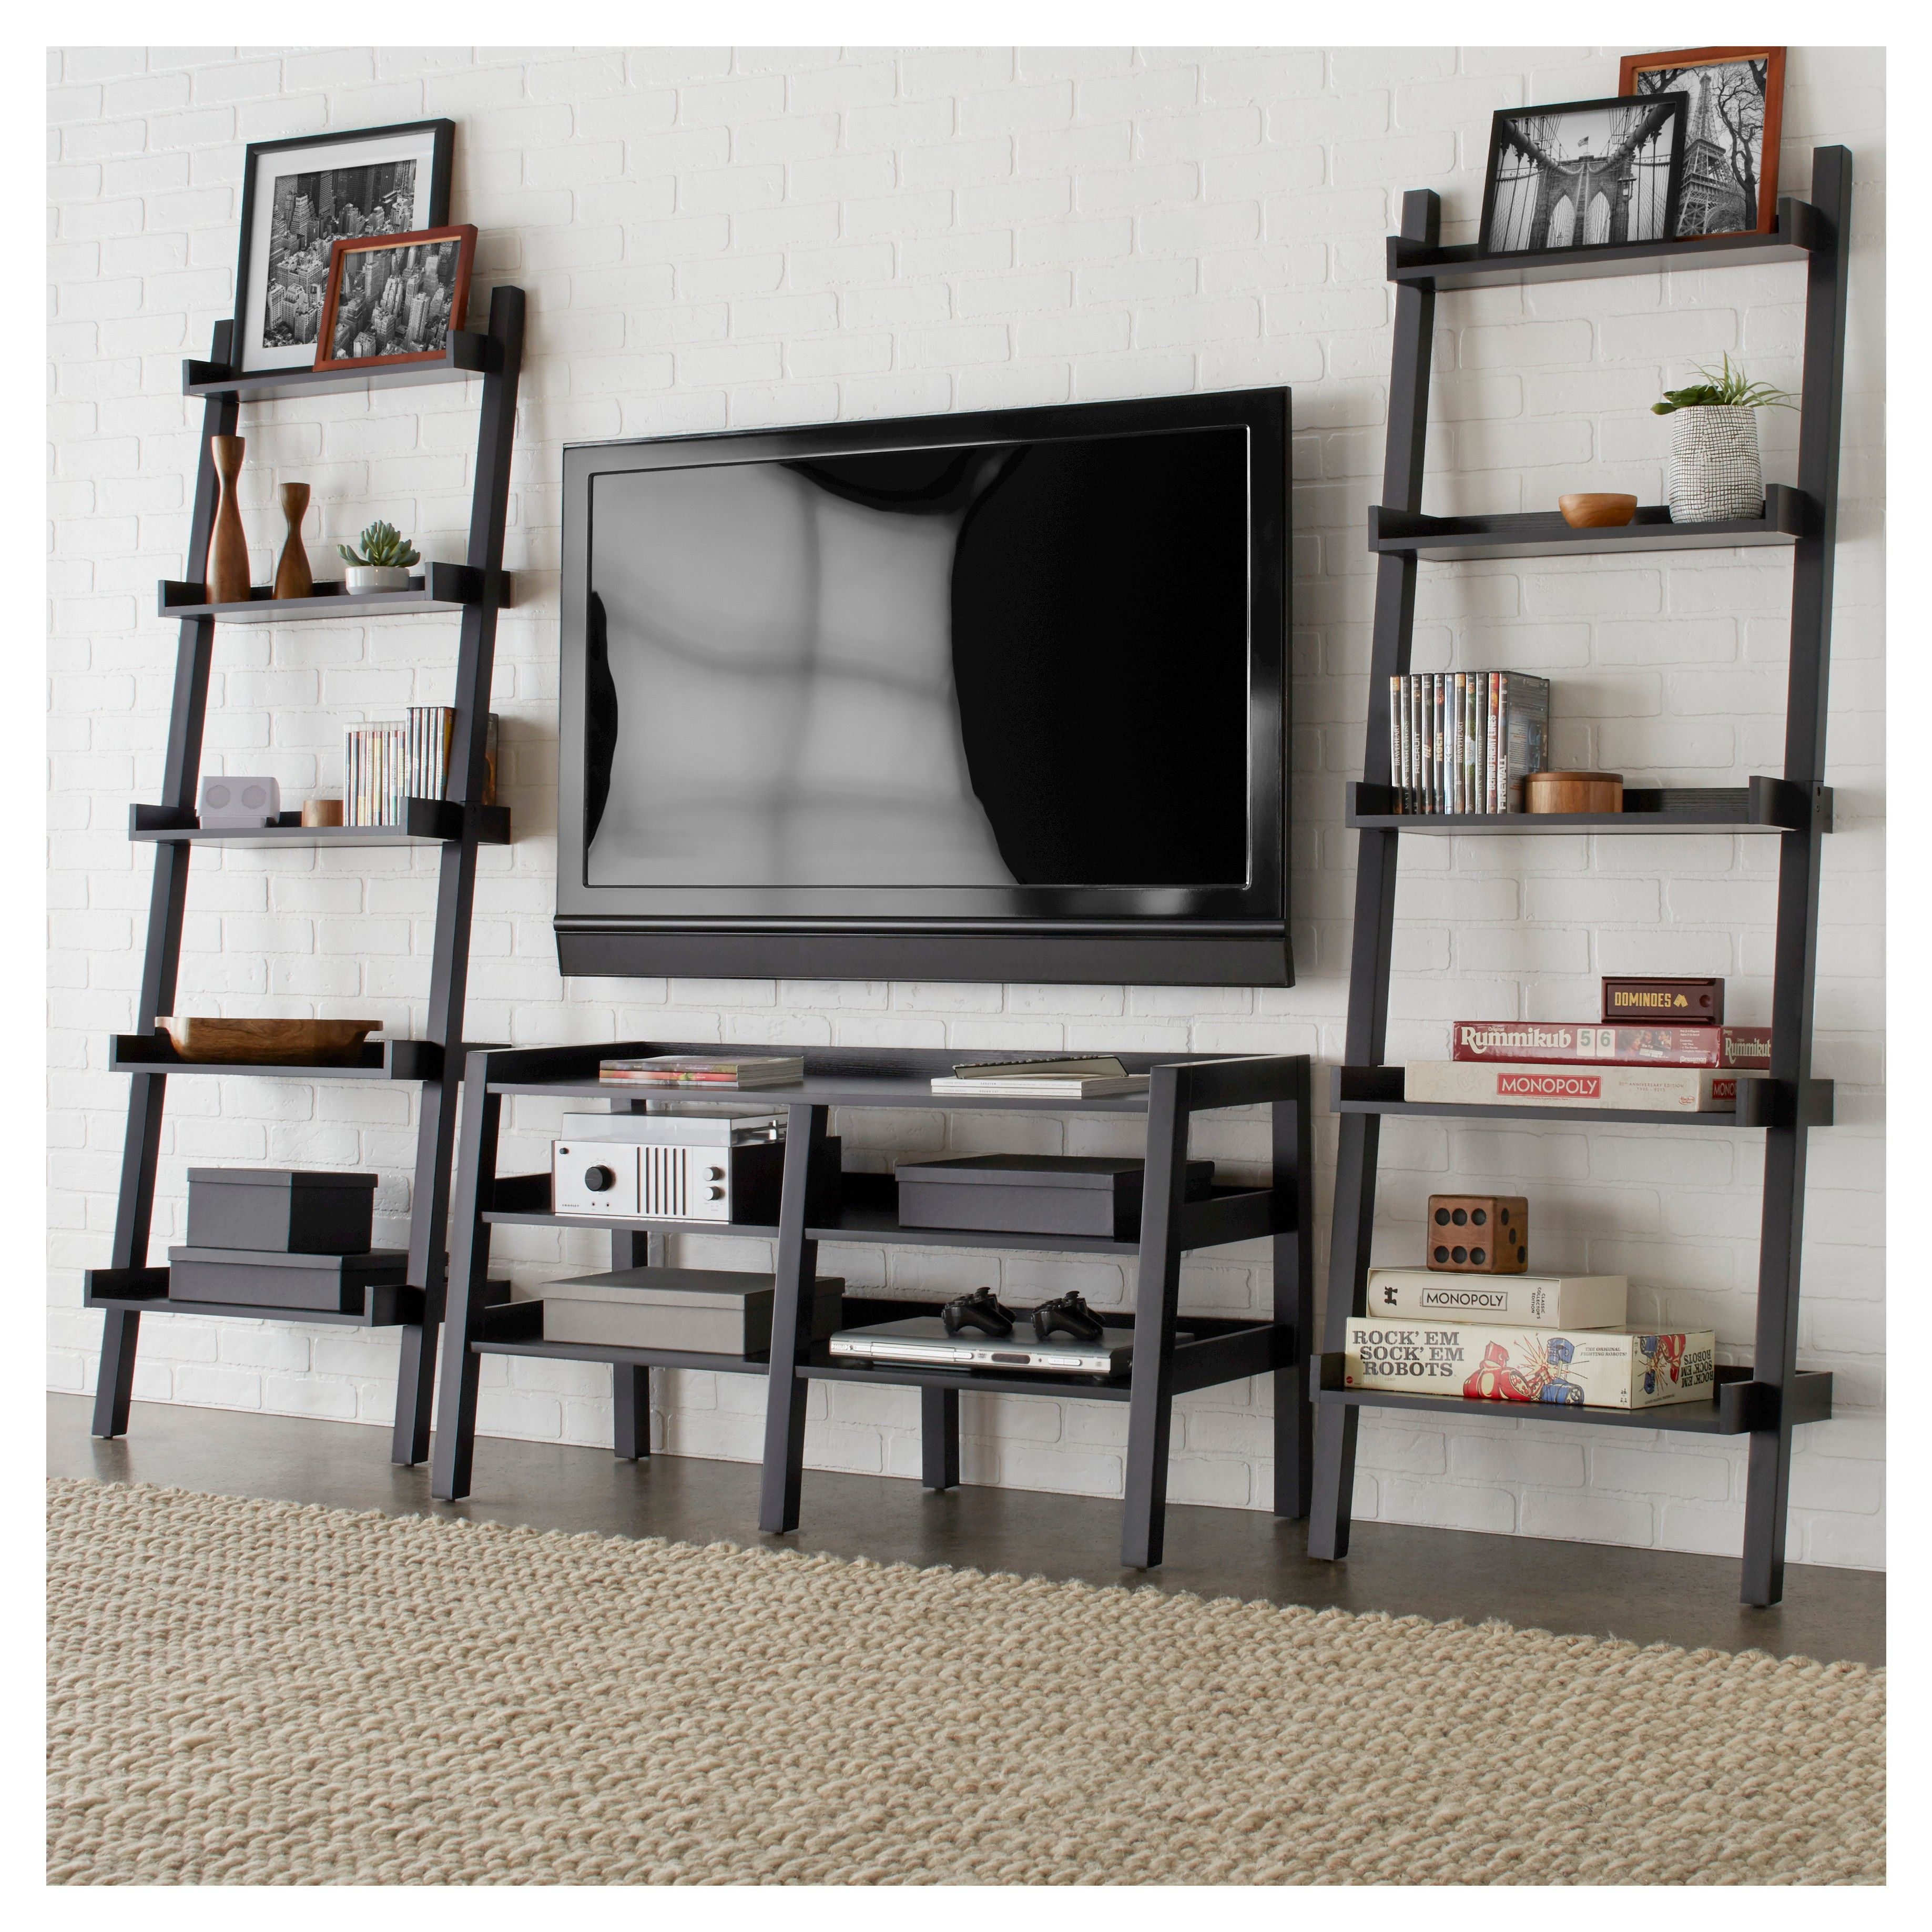 Lowry 46 Quot Leaning Tv Stand Gray Blu Dot Home Tv